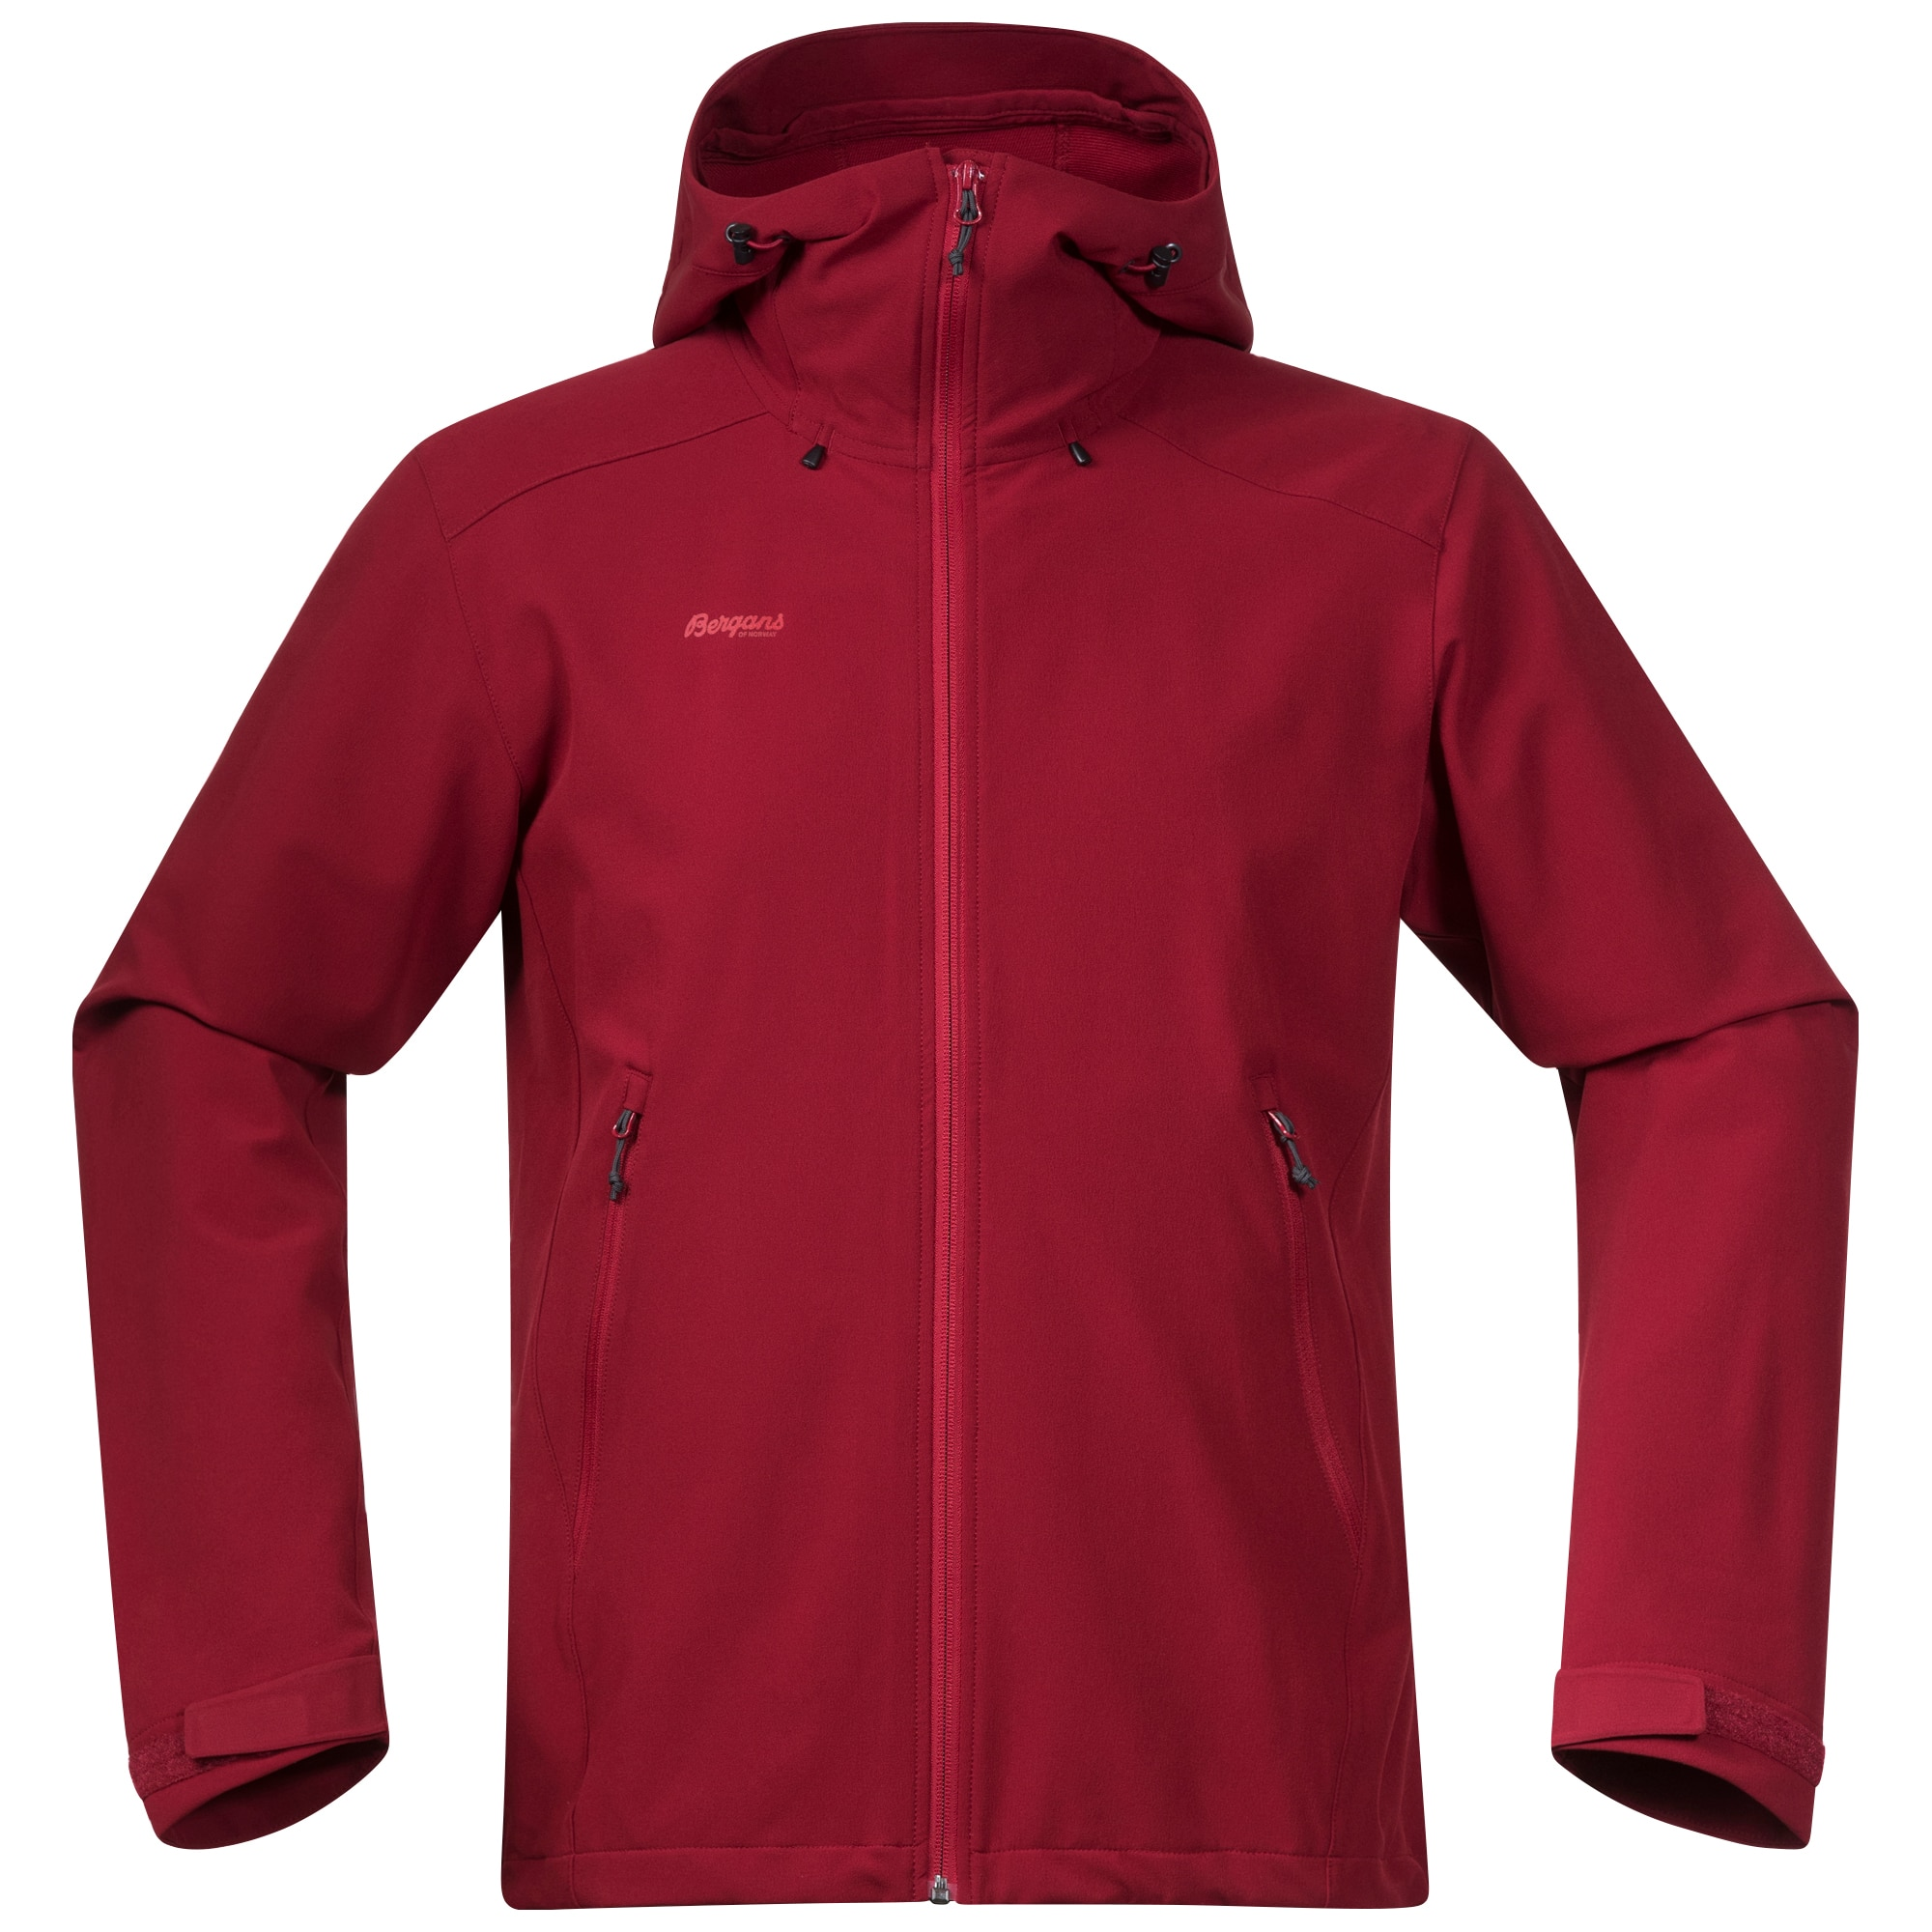 Ramberg Softshell Jacket